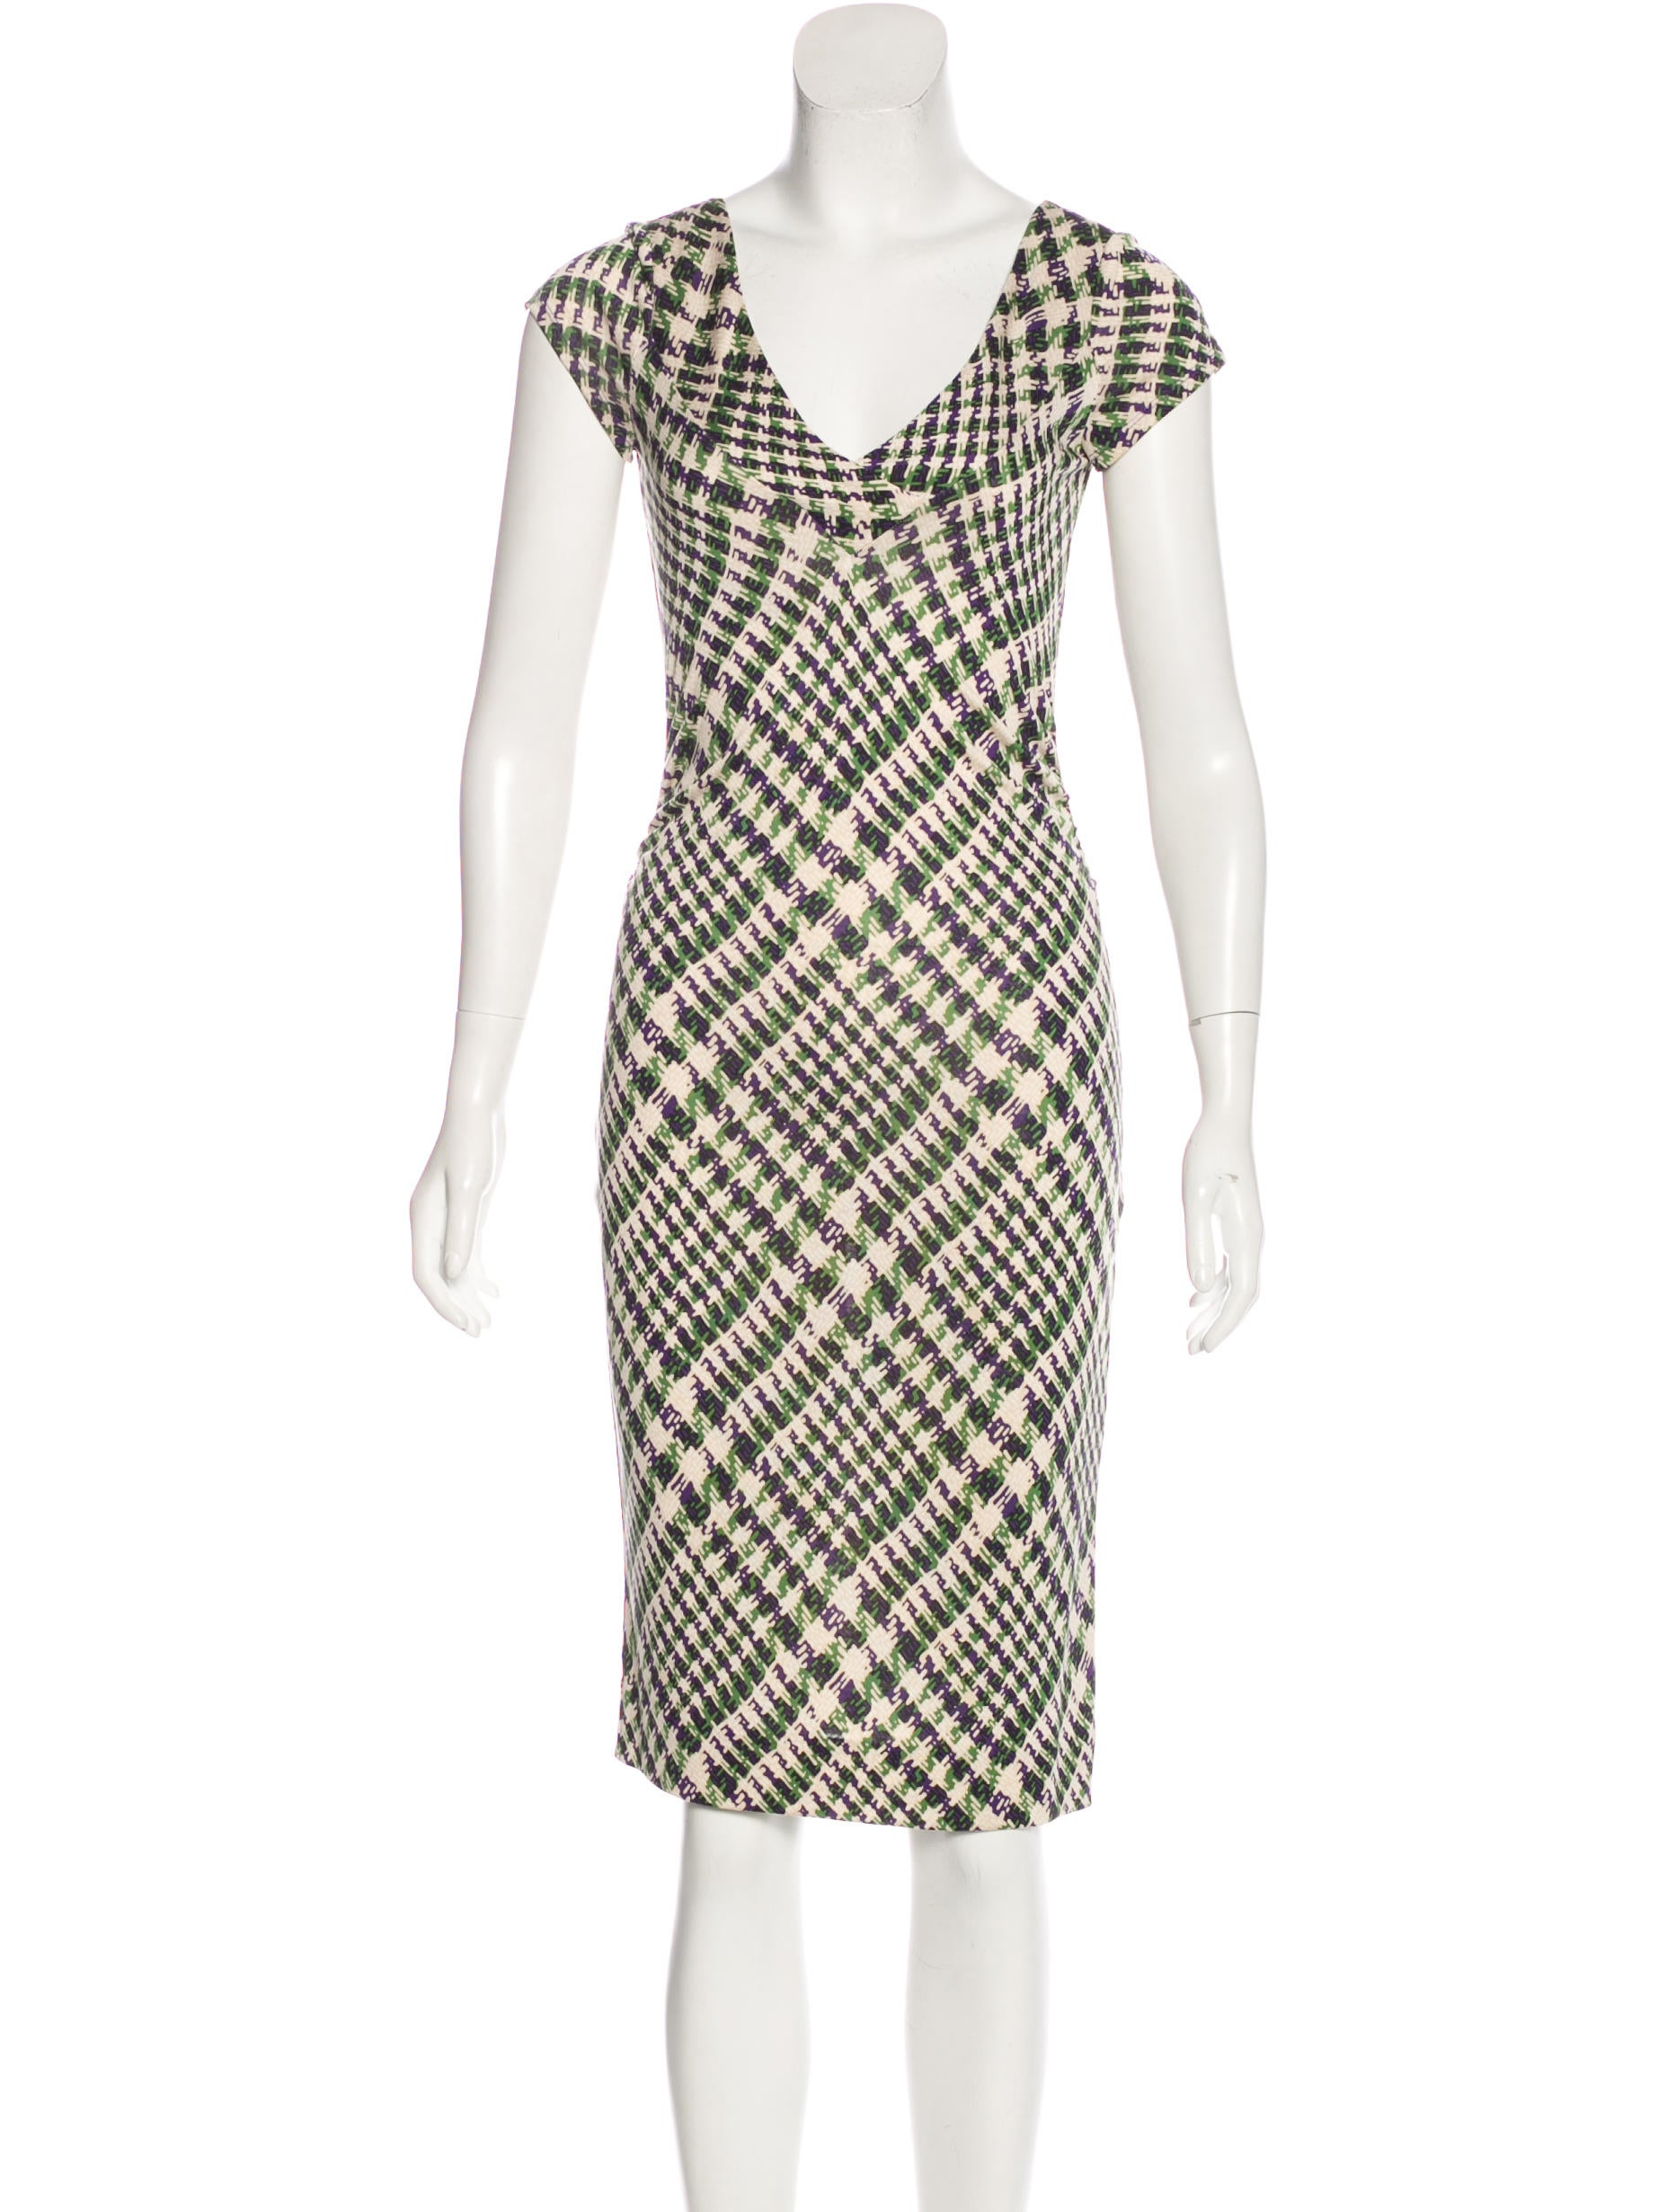 Diane von furstenberg estovan silk dress clothing for Diane von furstenberg clothes